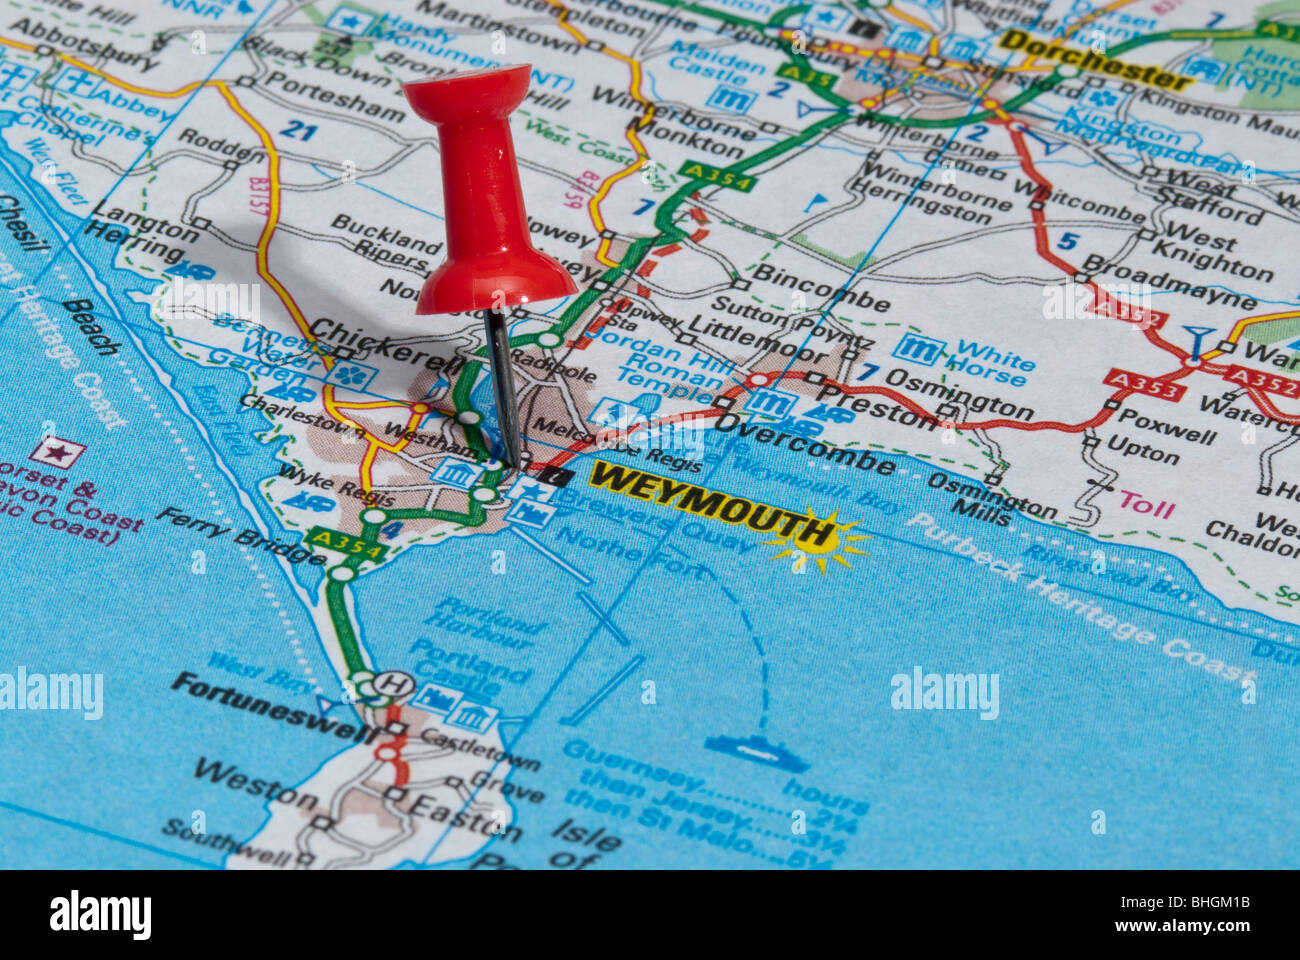 red map pin in road map pointing to city of Weymouth Stock Photo